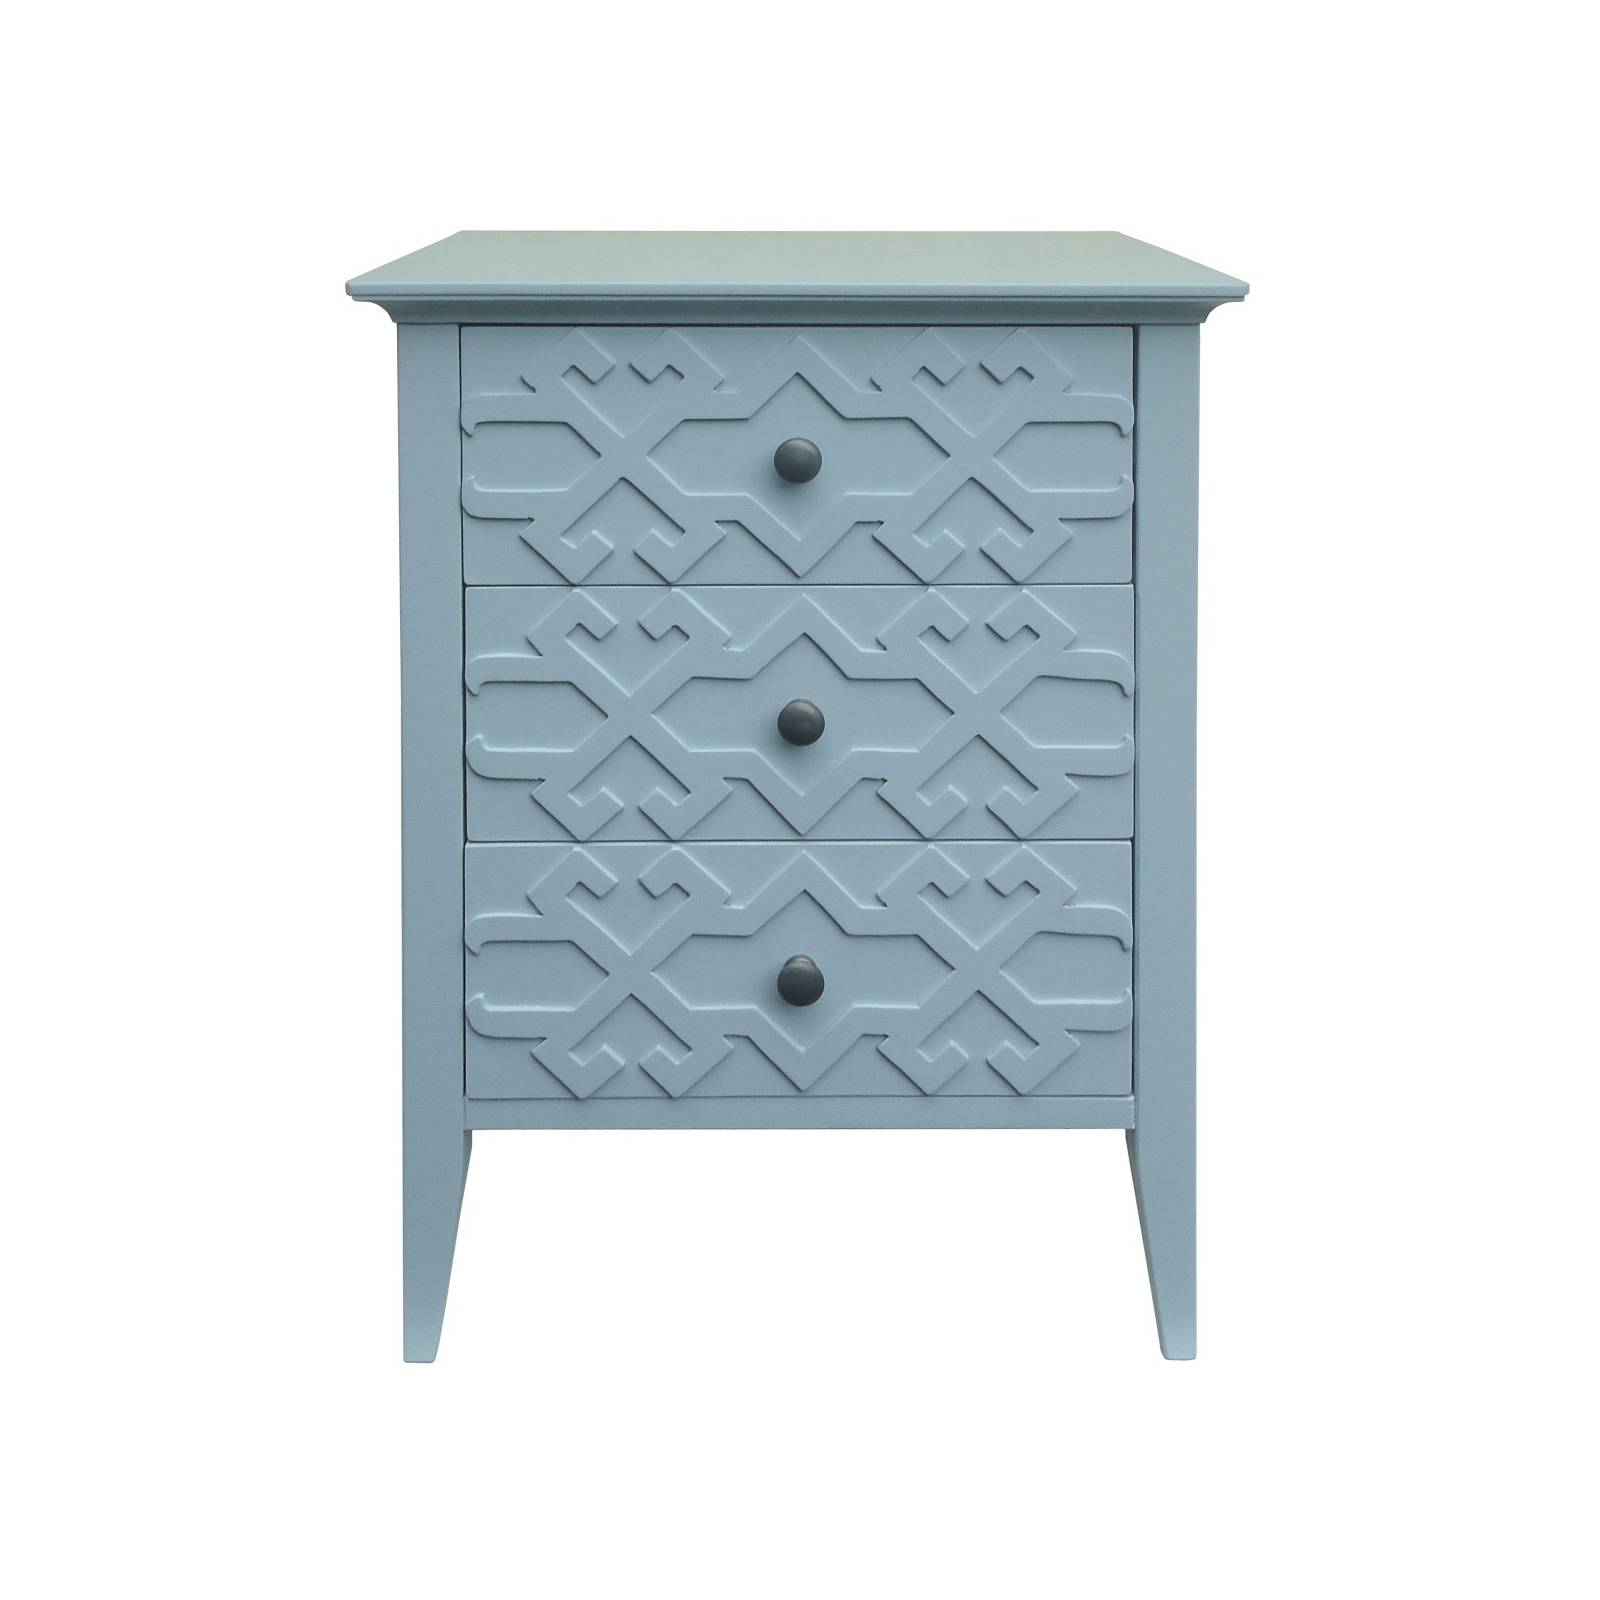 threshold fretwork accent viva saffron table teal solid wood coffee with drawers furniture covers pottery barn high garden chairs bar height legs mirrored victorian hall console